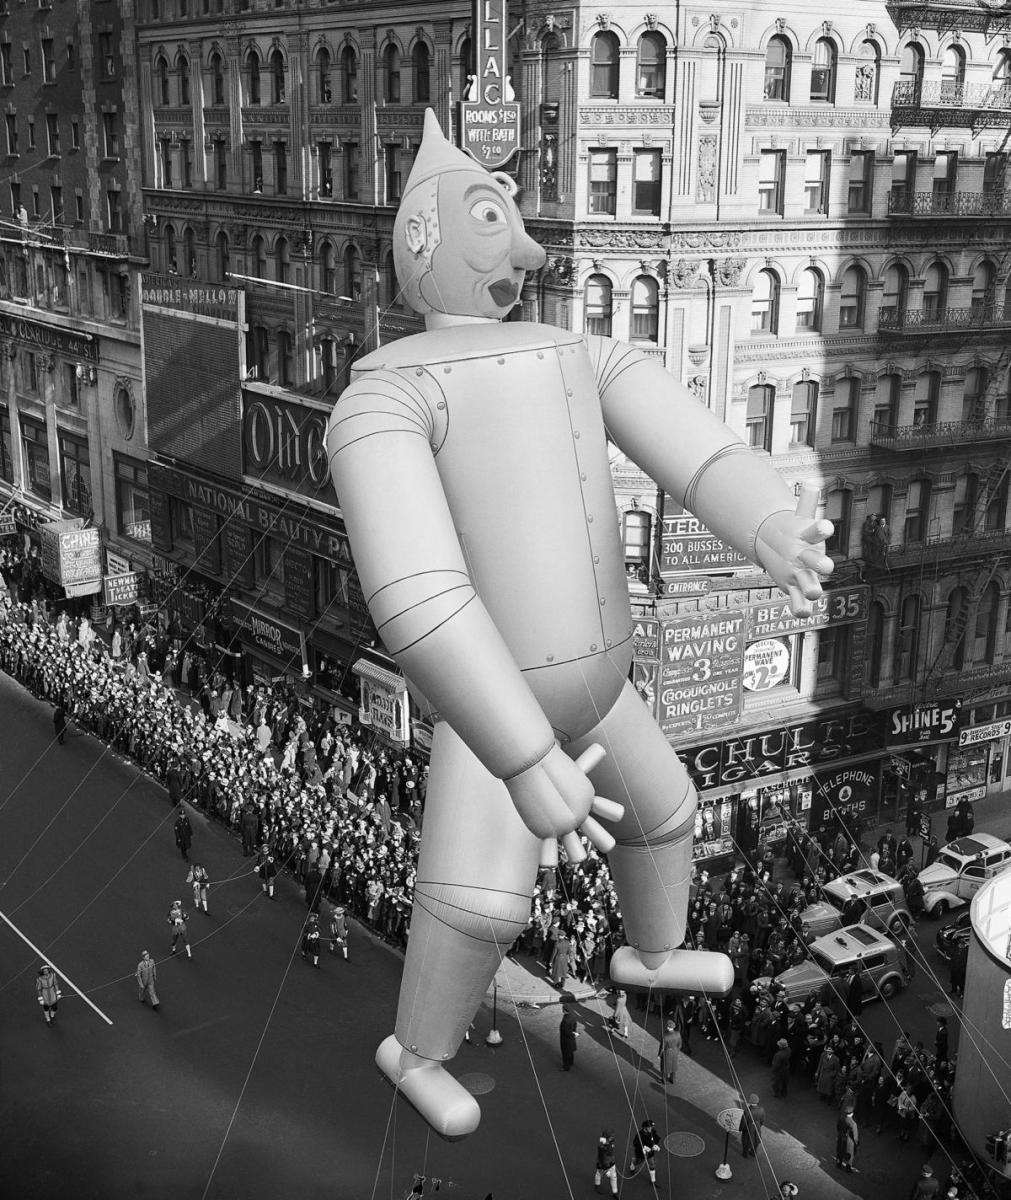 (Credit: Bettmann Archive/Getty Images)